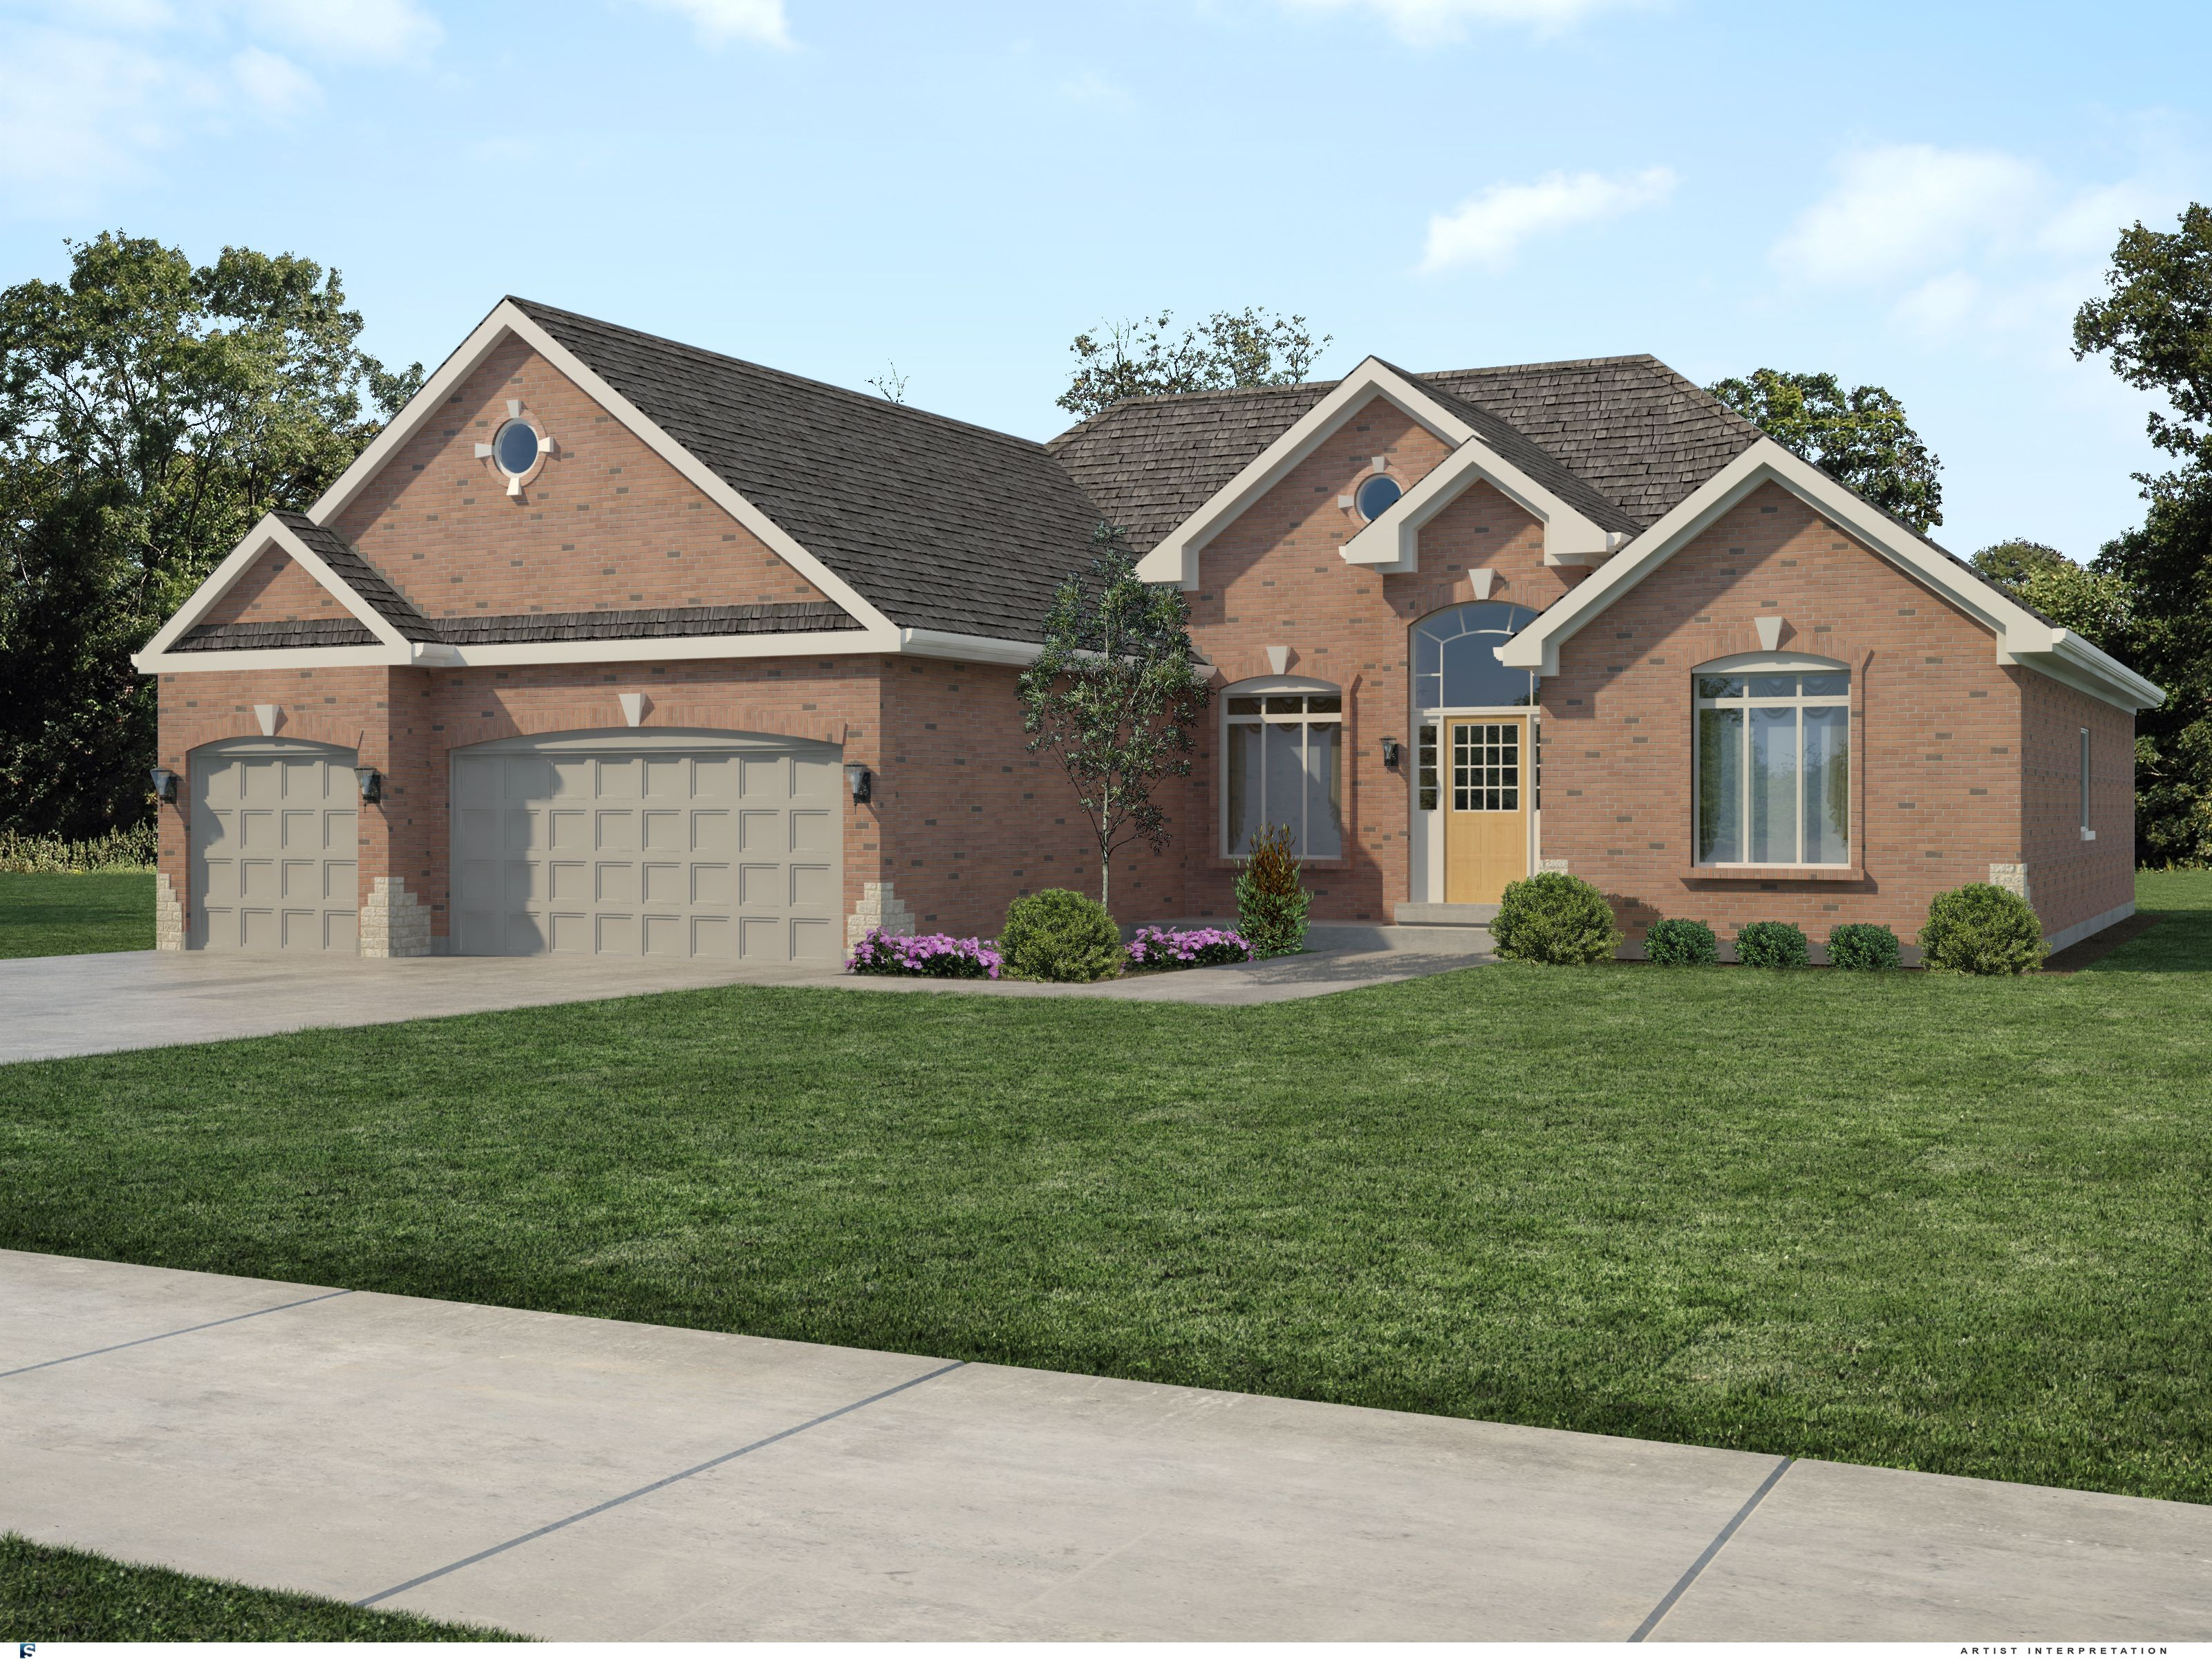 A ranch home with curb appeal house plans pinterest for Ranch house curb appeal